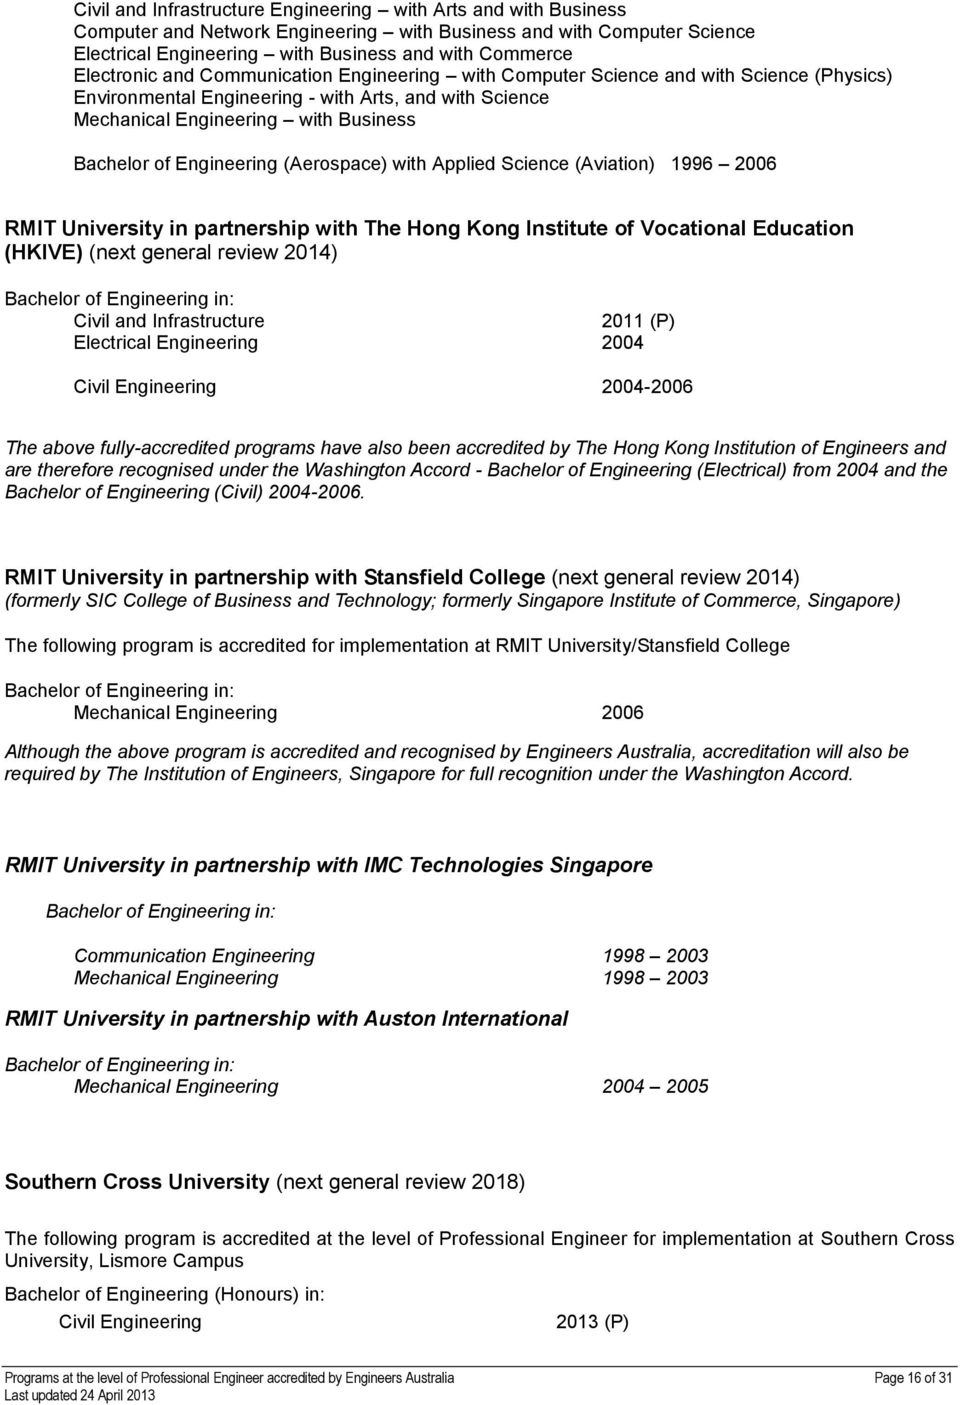 Engineering (Aerospace) with Applied Science (Aviation) 1996 2006 RMIT University in partnership with The Hong Kong Institute of Vocational Education (HKIVE) (next general review 2014) Civil and